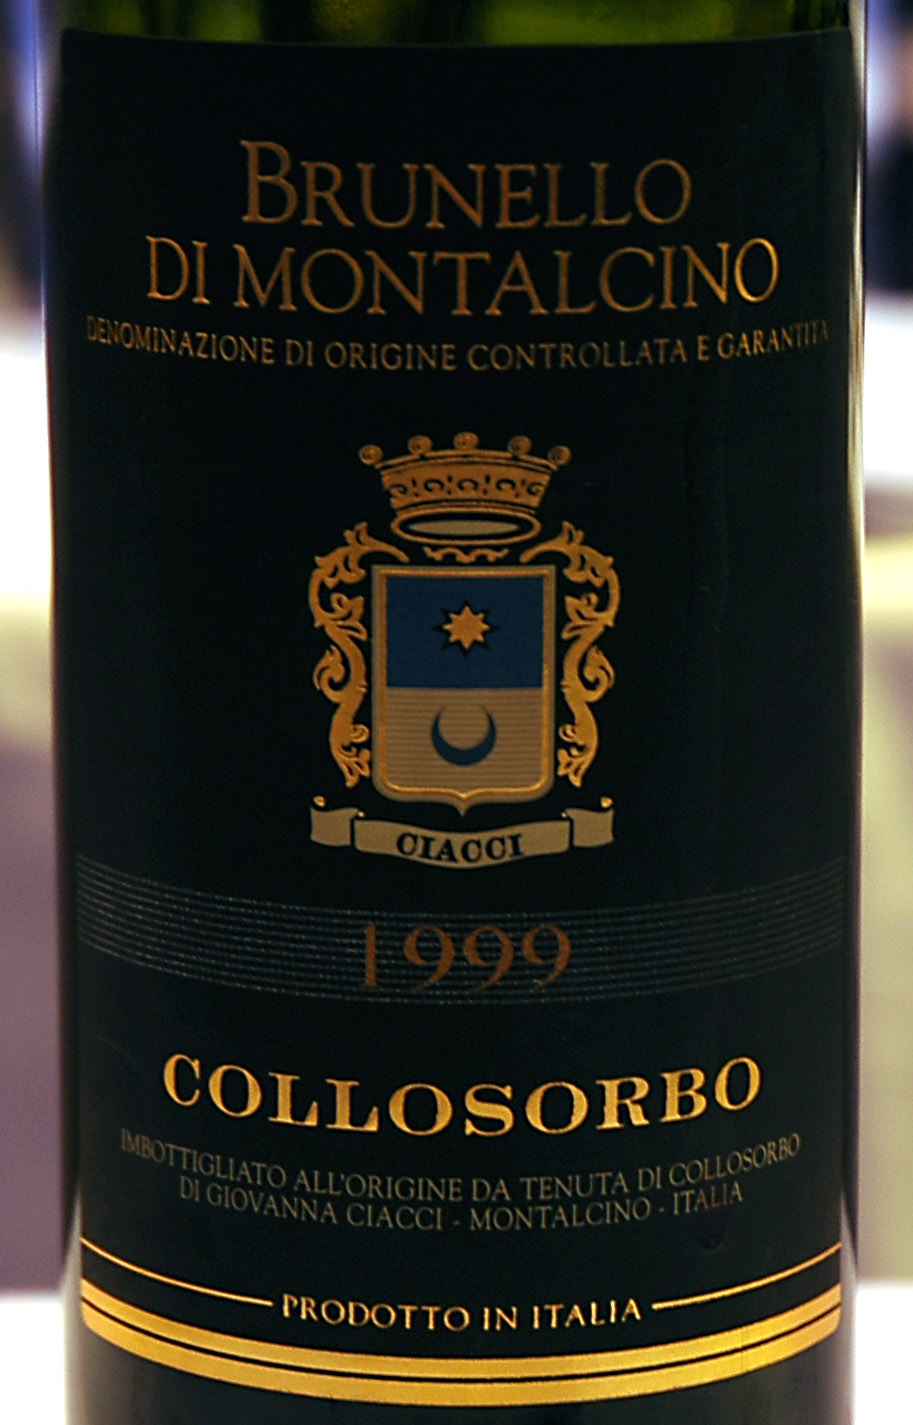 1999 Tenuta Di Collosorbo Brunello Montalcino The Nose Showed Brown Sugar And Herbal Green Stems Palate Came Across Soft Velvety Yet With